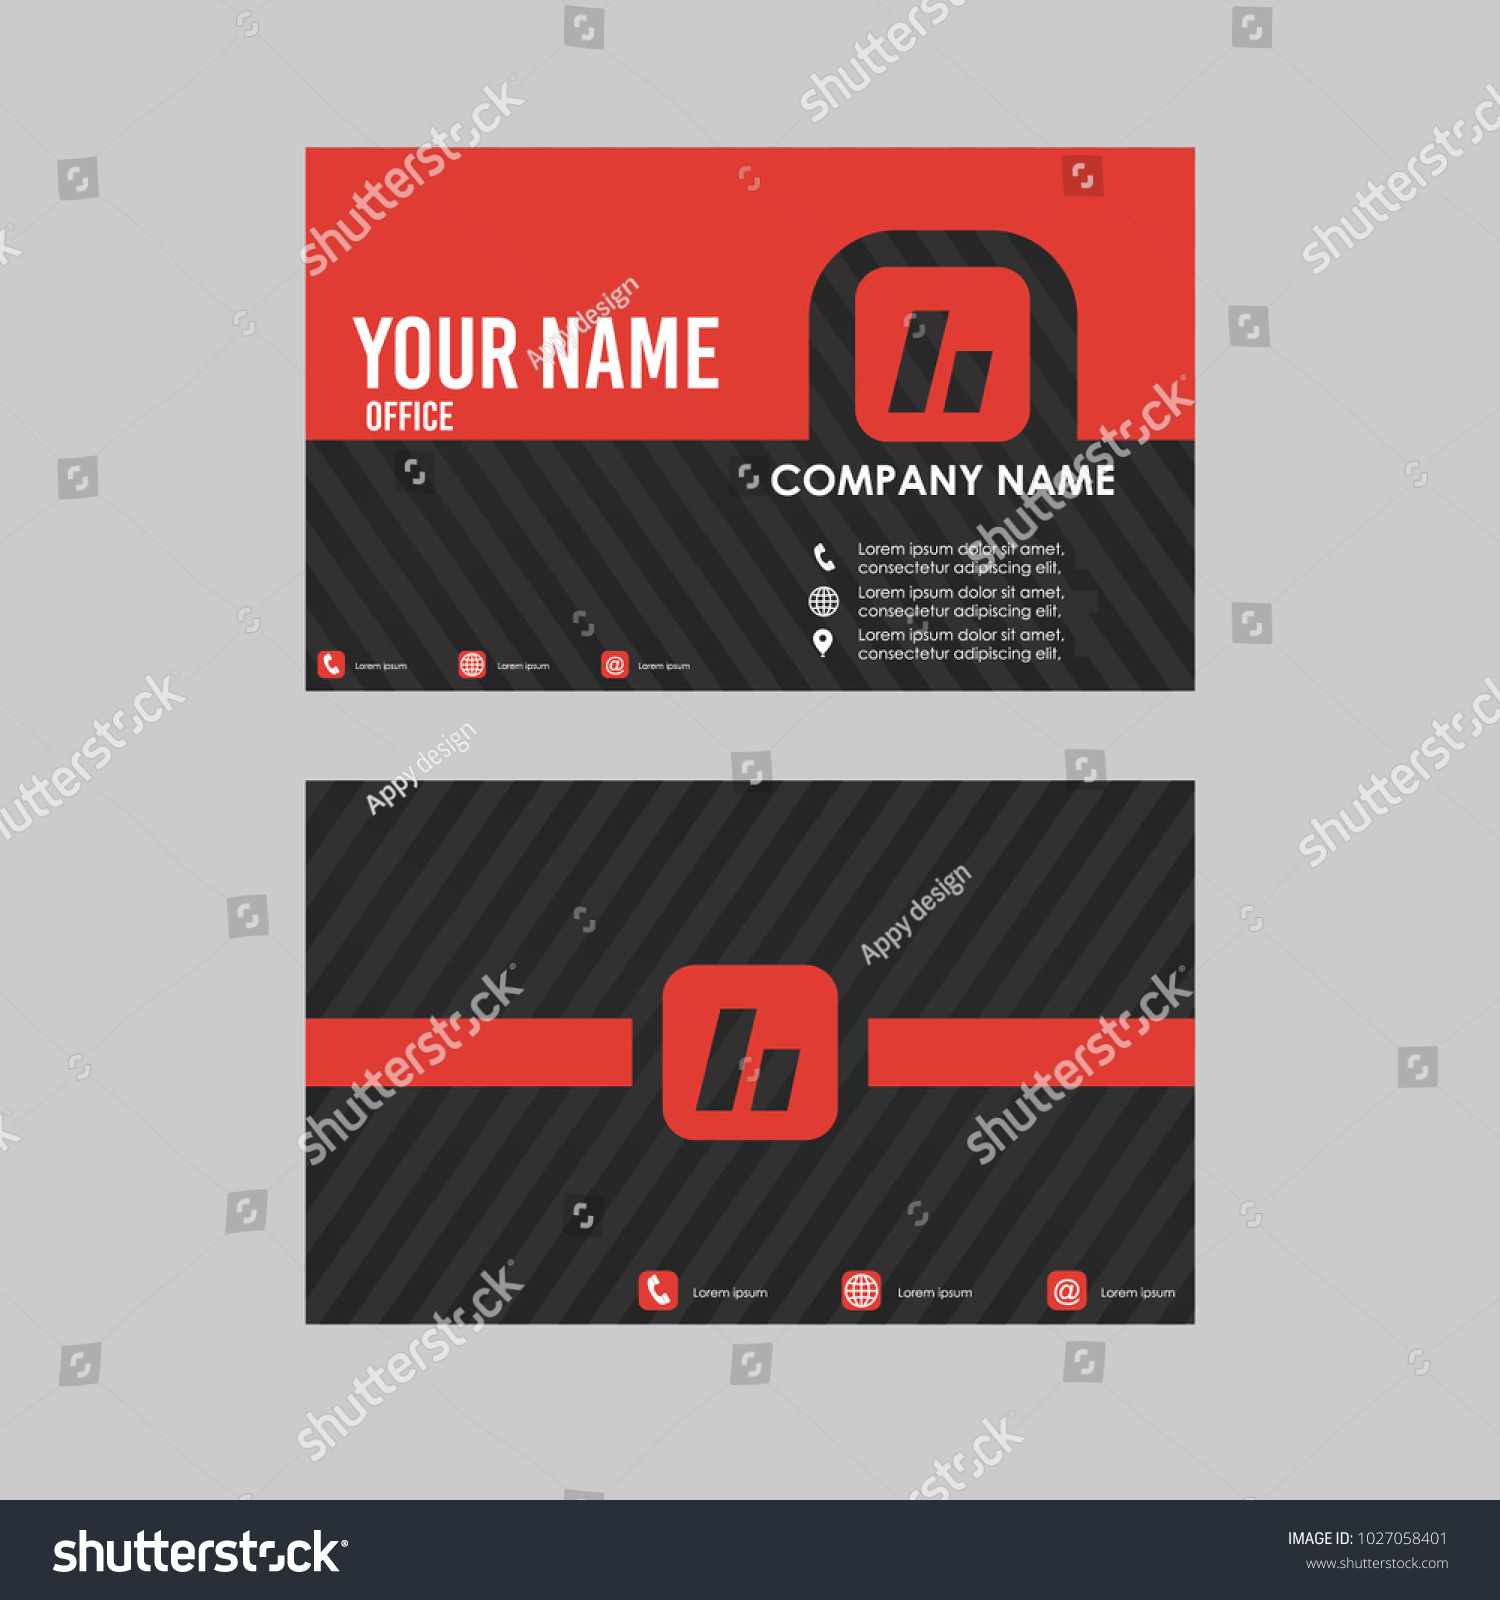 Template Id Card Business Card Black Stock Vector HD (Royalty Free ...